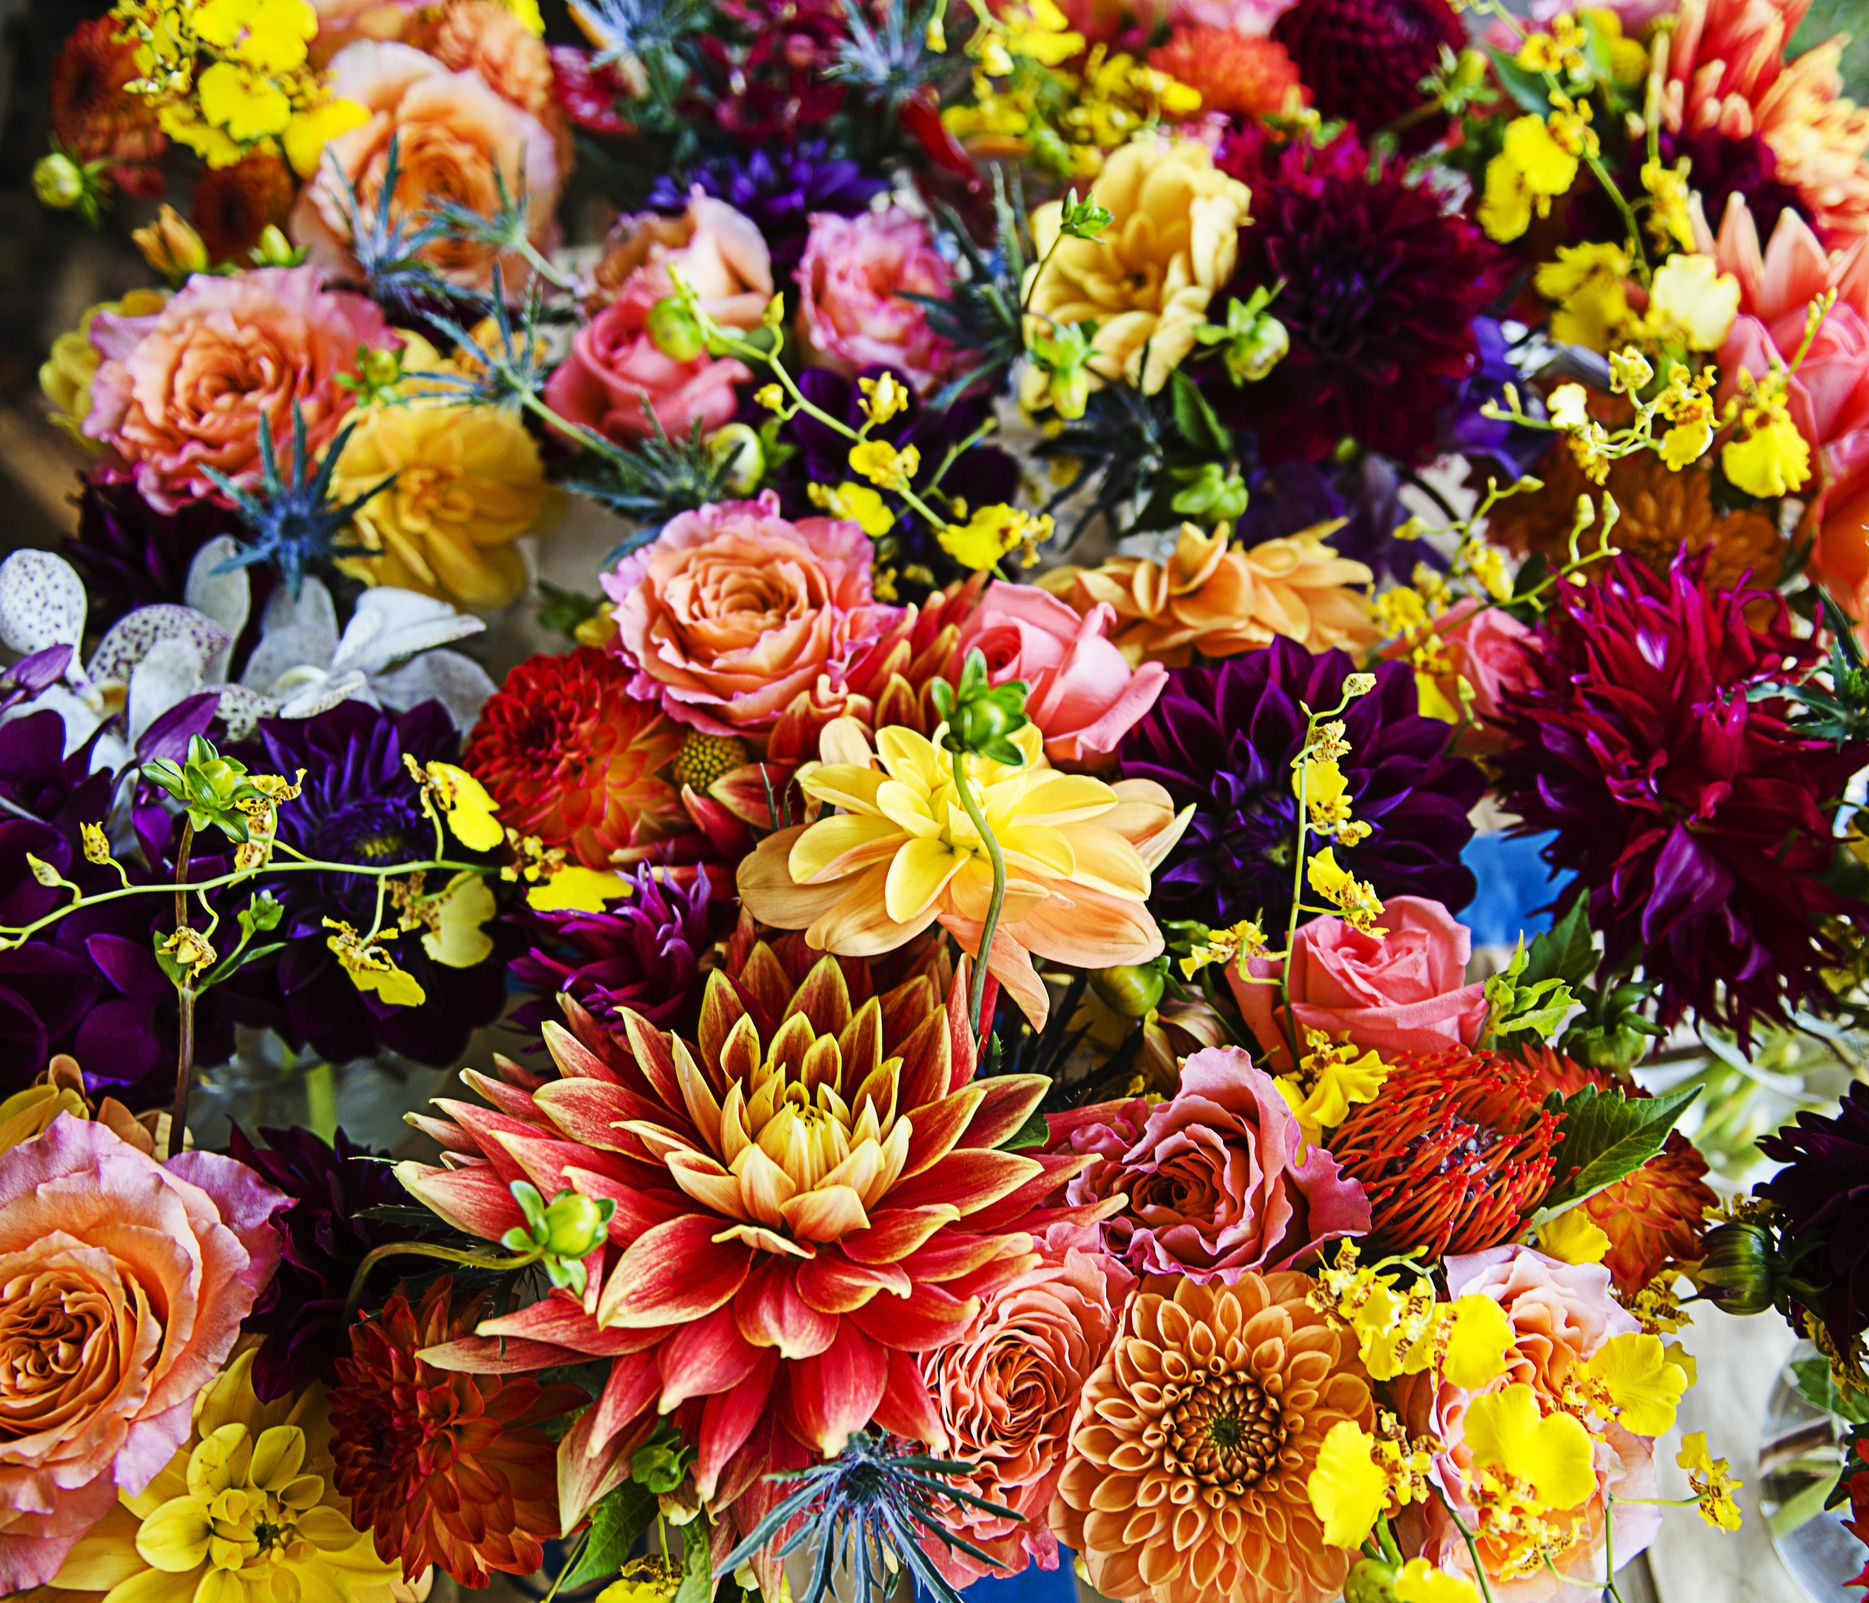 What Your Birth Flower Says About You The Birth Flower For Each Month Of The Year